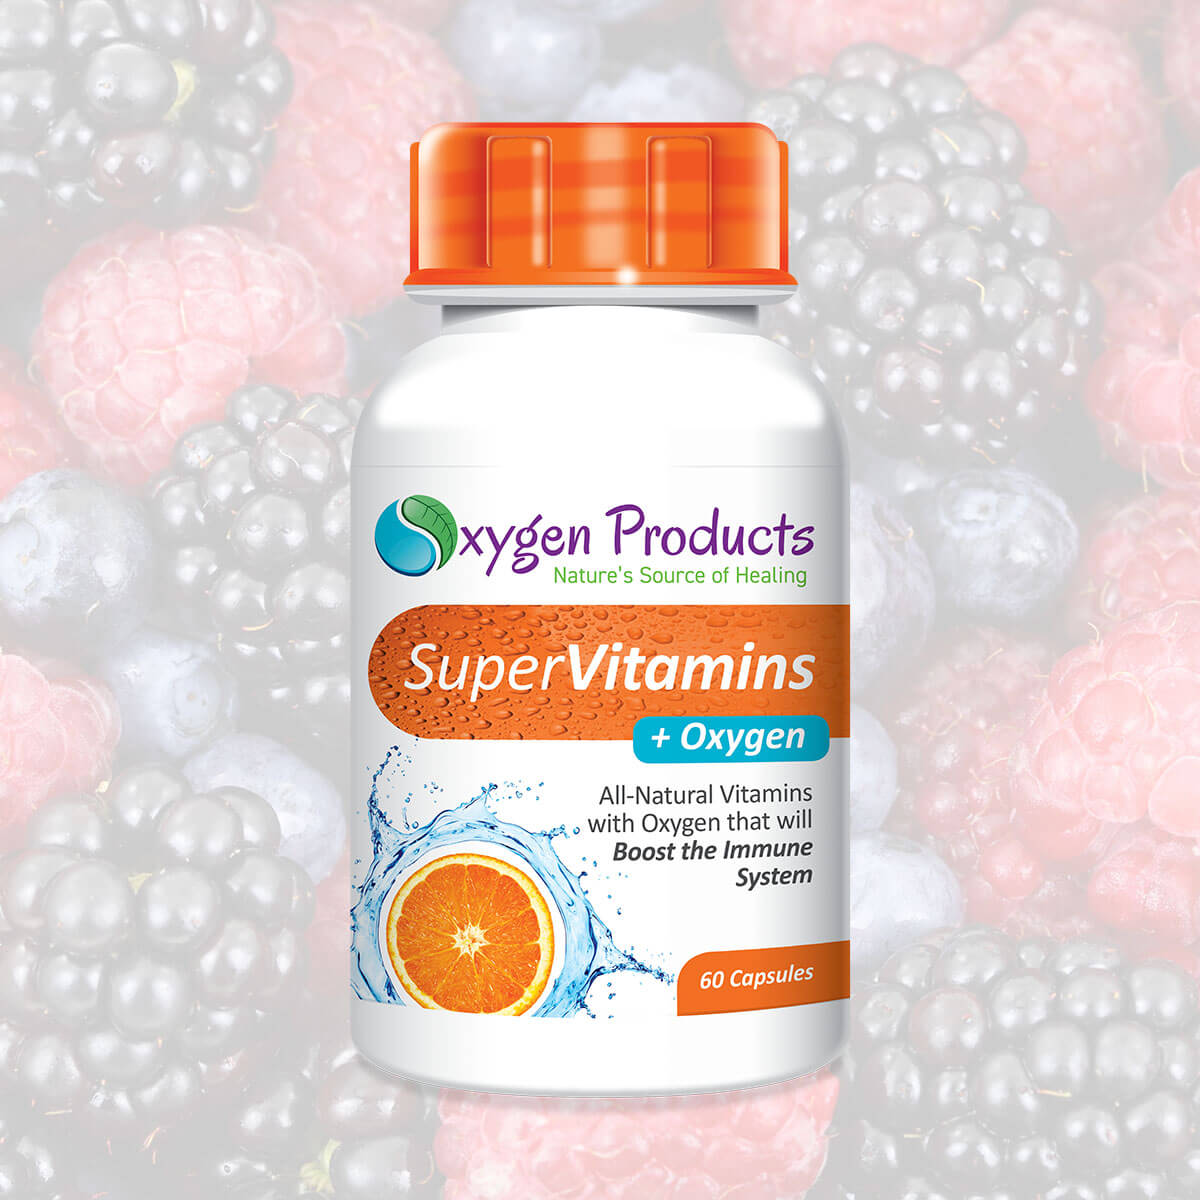 Super Vitamins + Oxygen Home Image